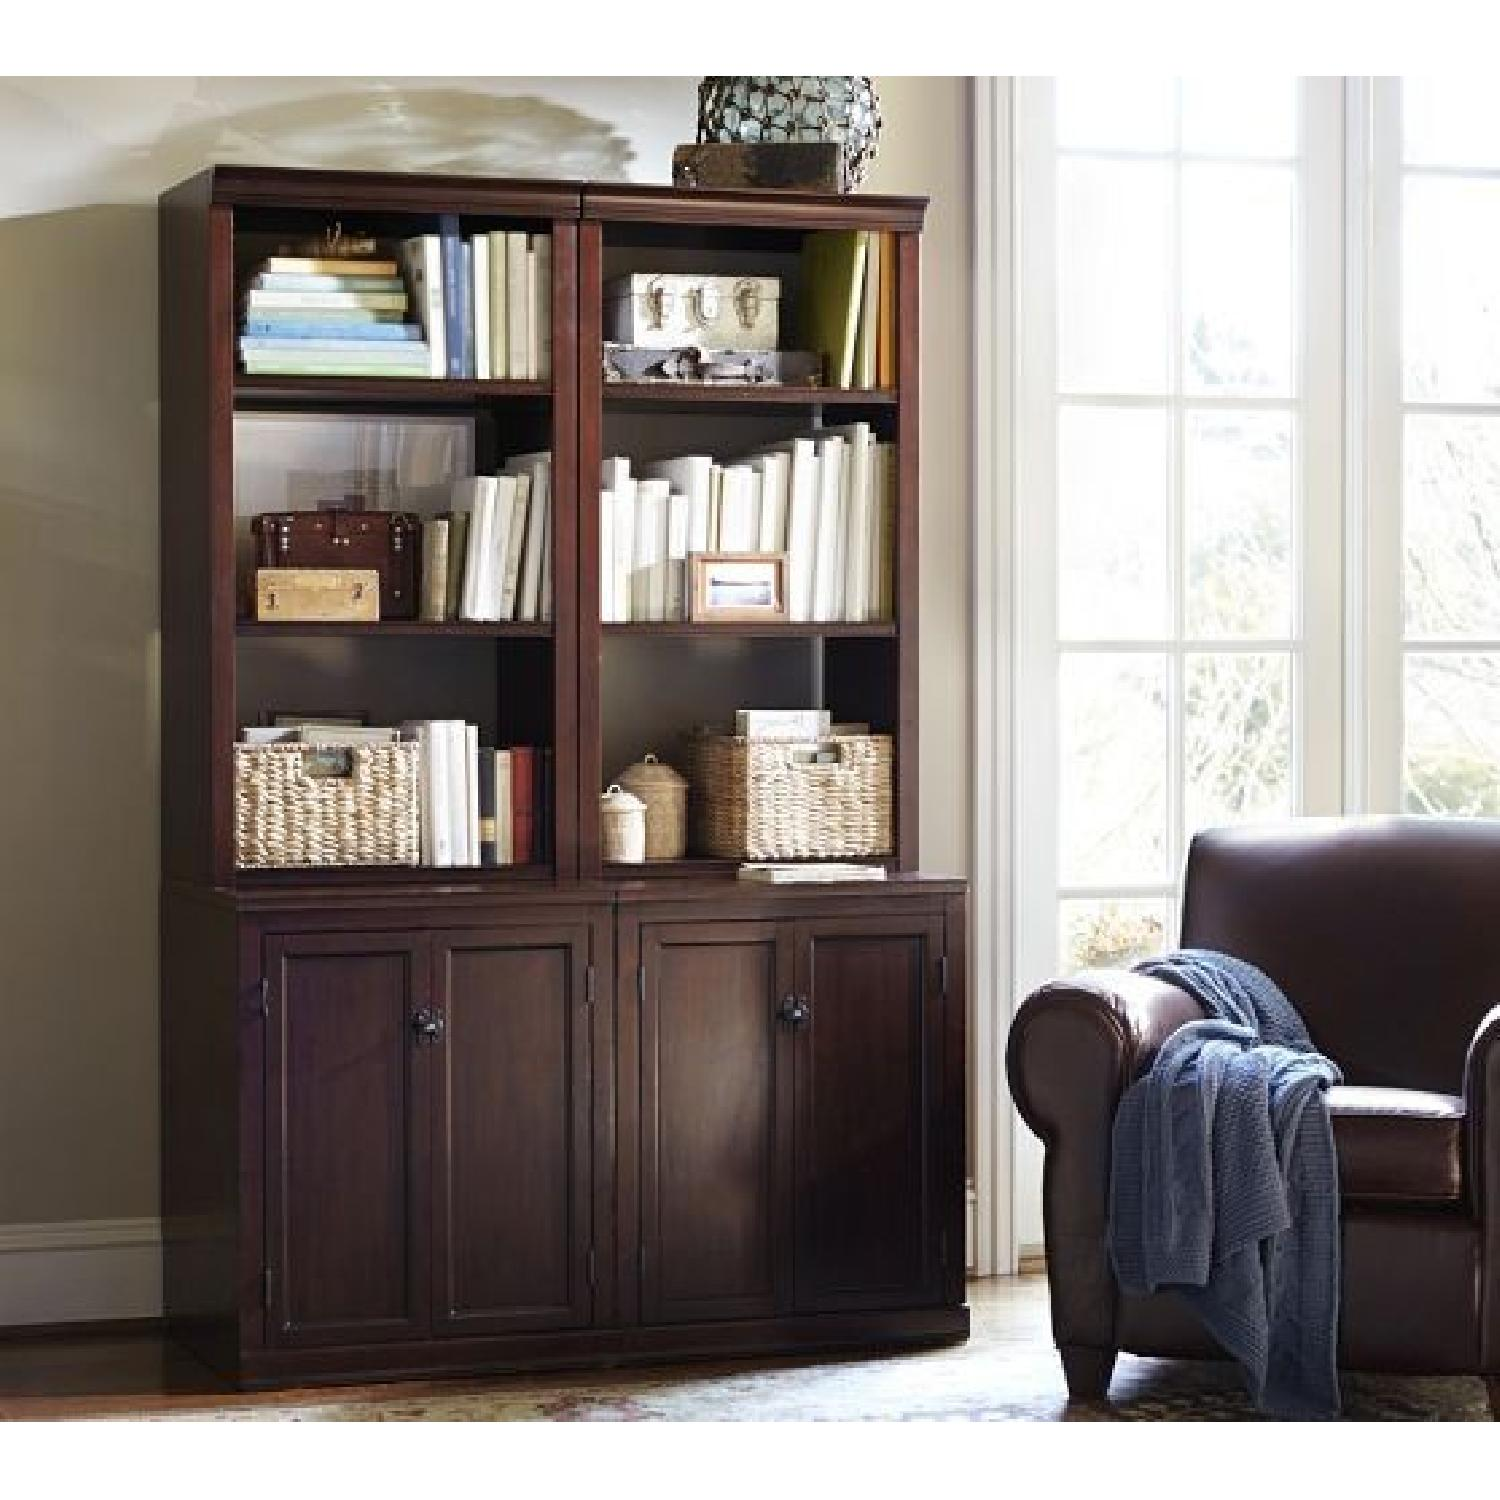 Pottery Barn Logan Bookcase w/ Cabinet Doors-2